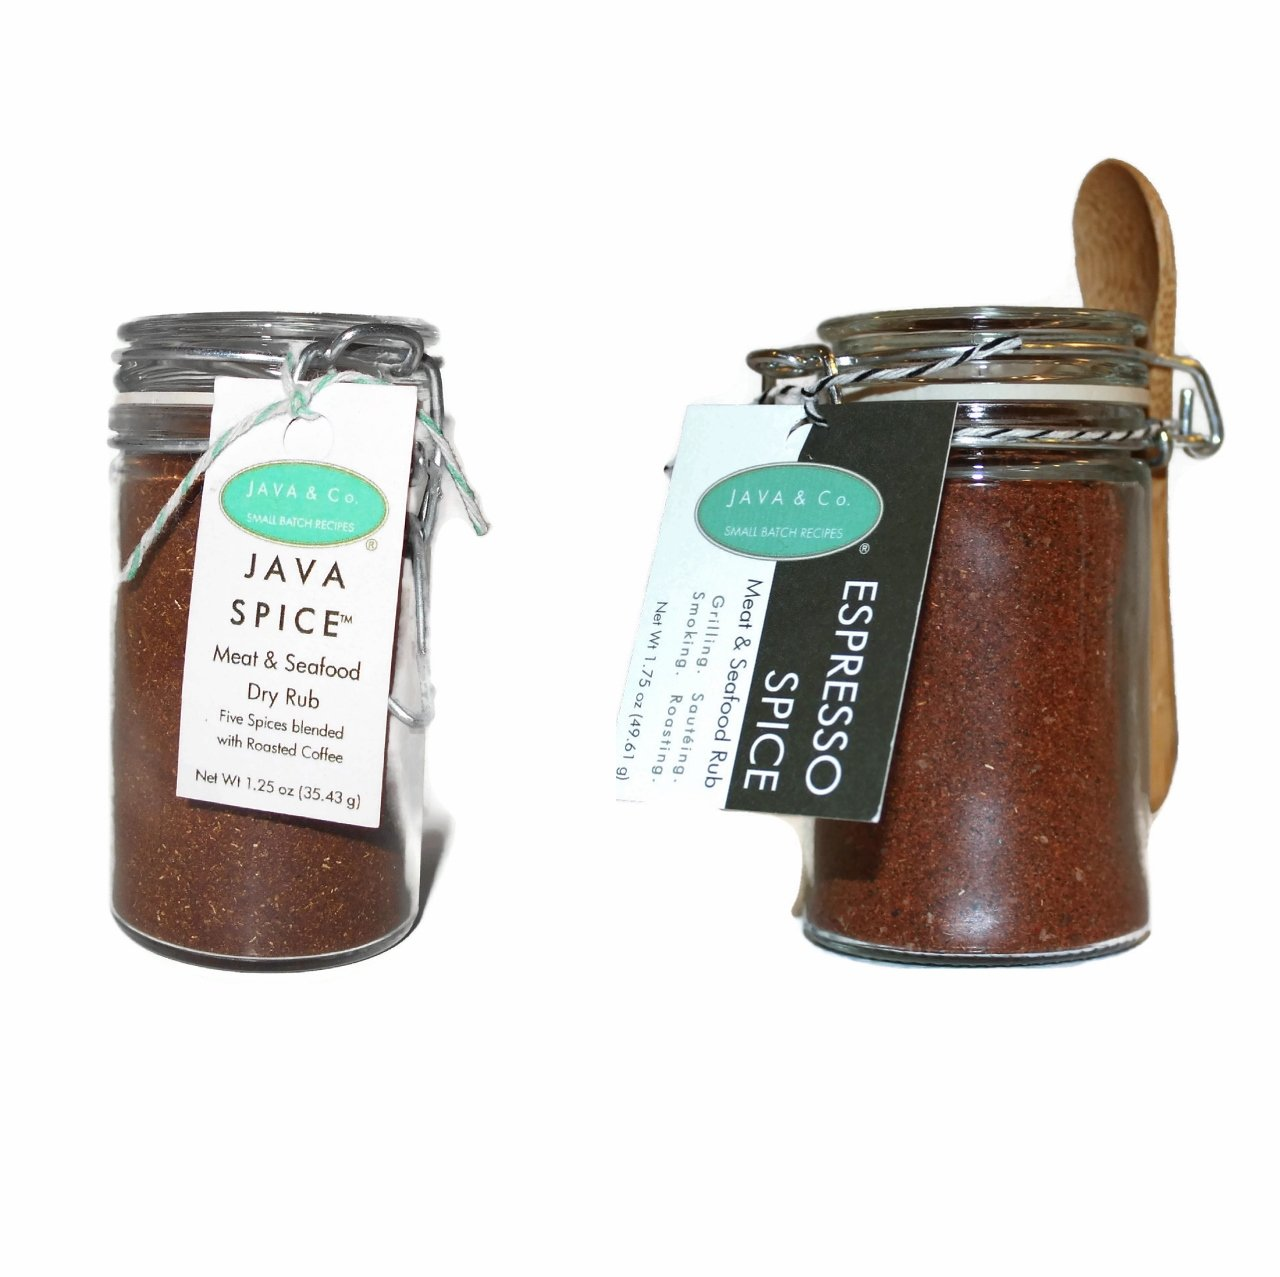 Espresso Spice & JAVA Spice ~ Meat & Seafood Rub DUO, Gift Set of 2 Spices